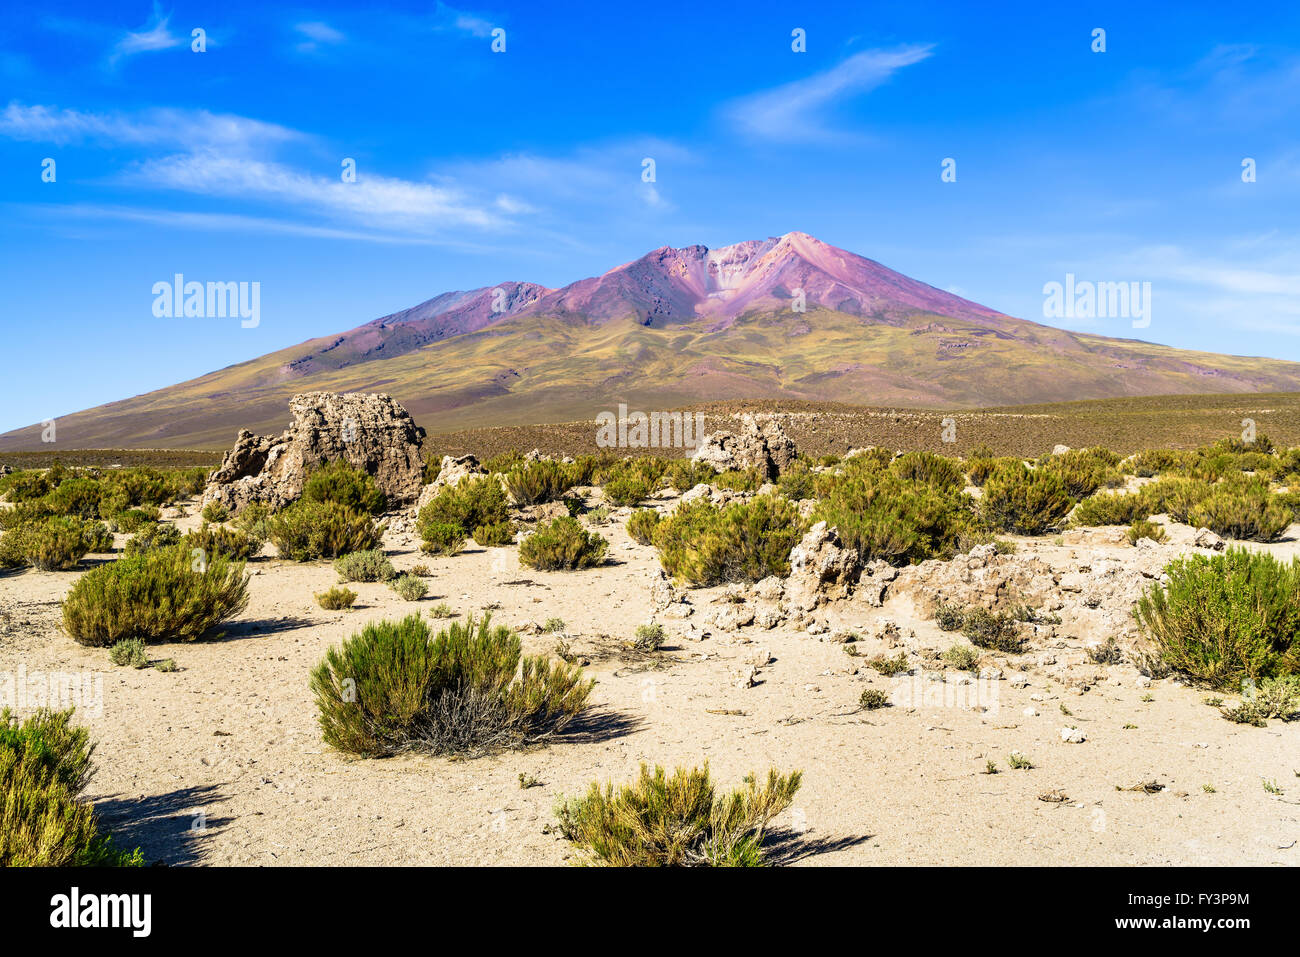 Mountain and desert in The National Park, Uyuni, Bolivia - Stock Image